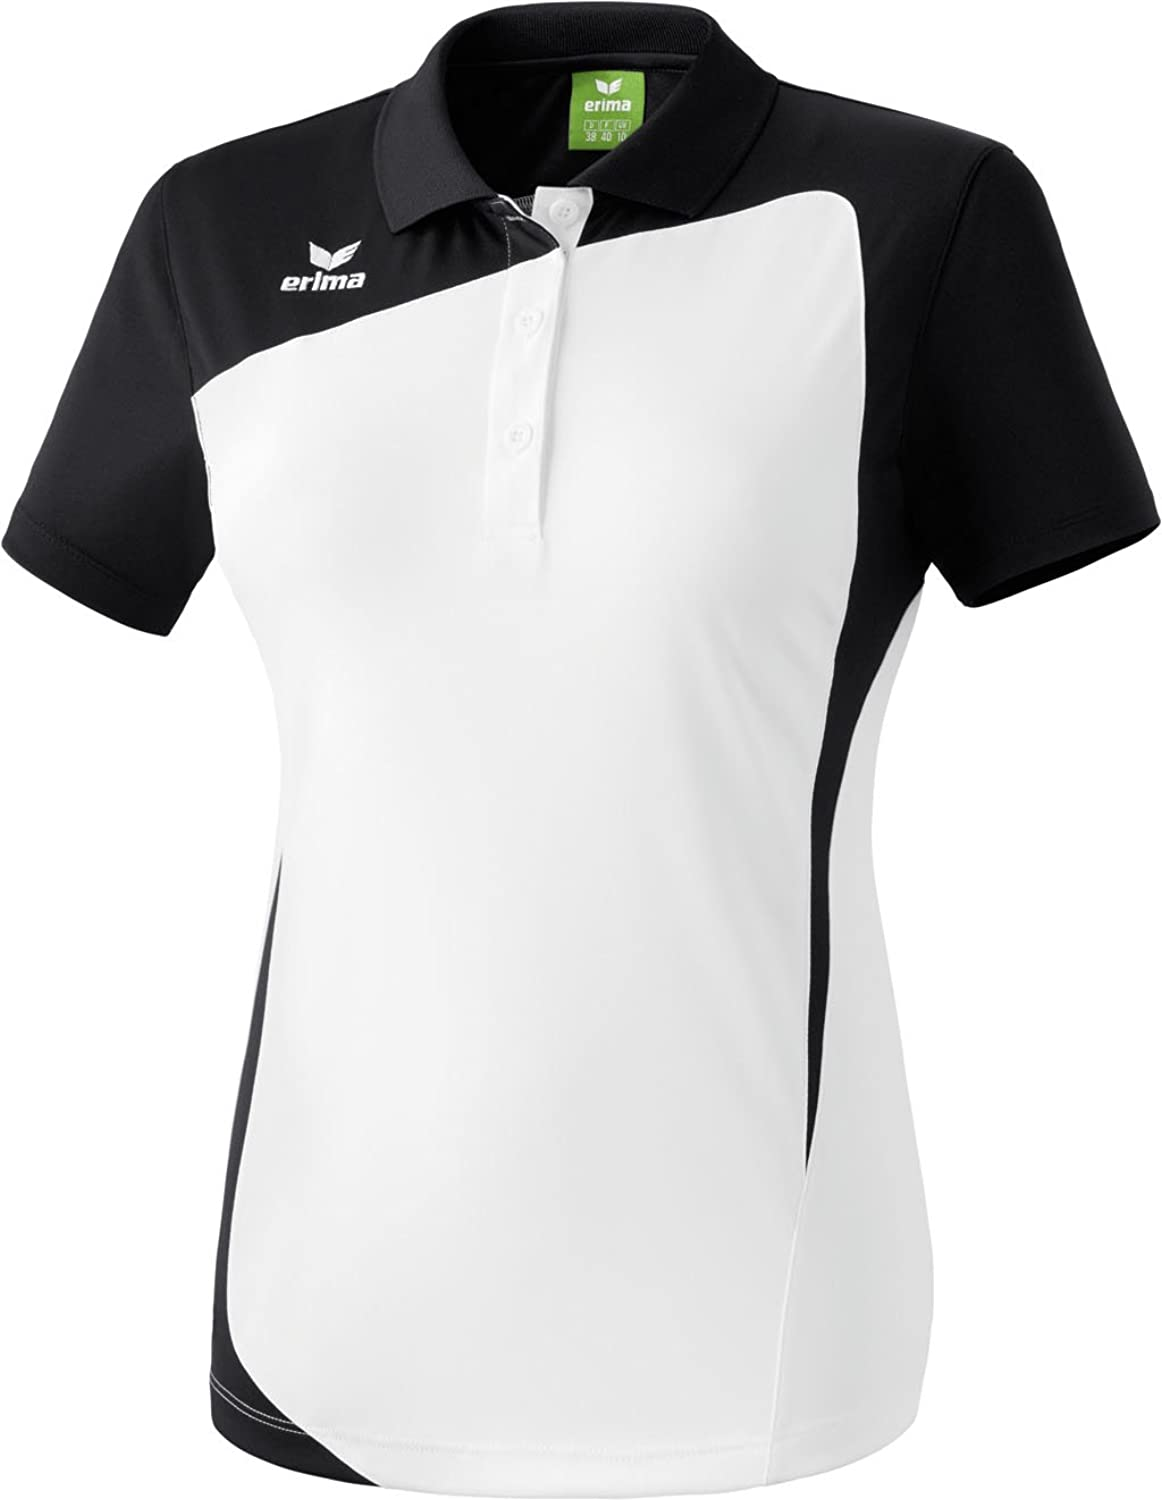 Erima Women's Club 1900 Polo Shirt